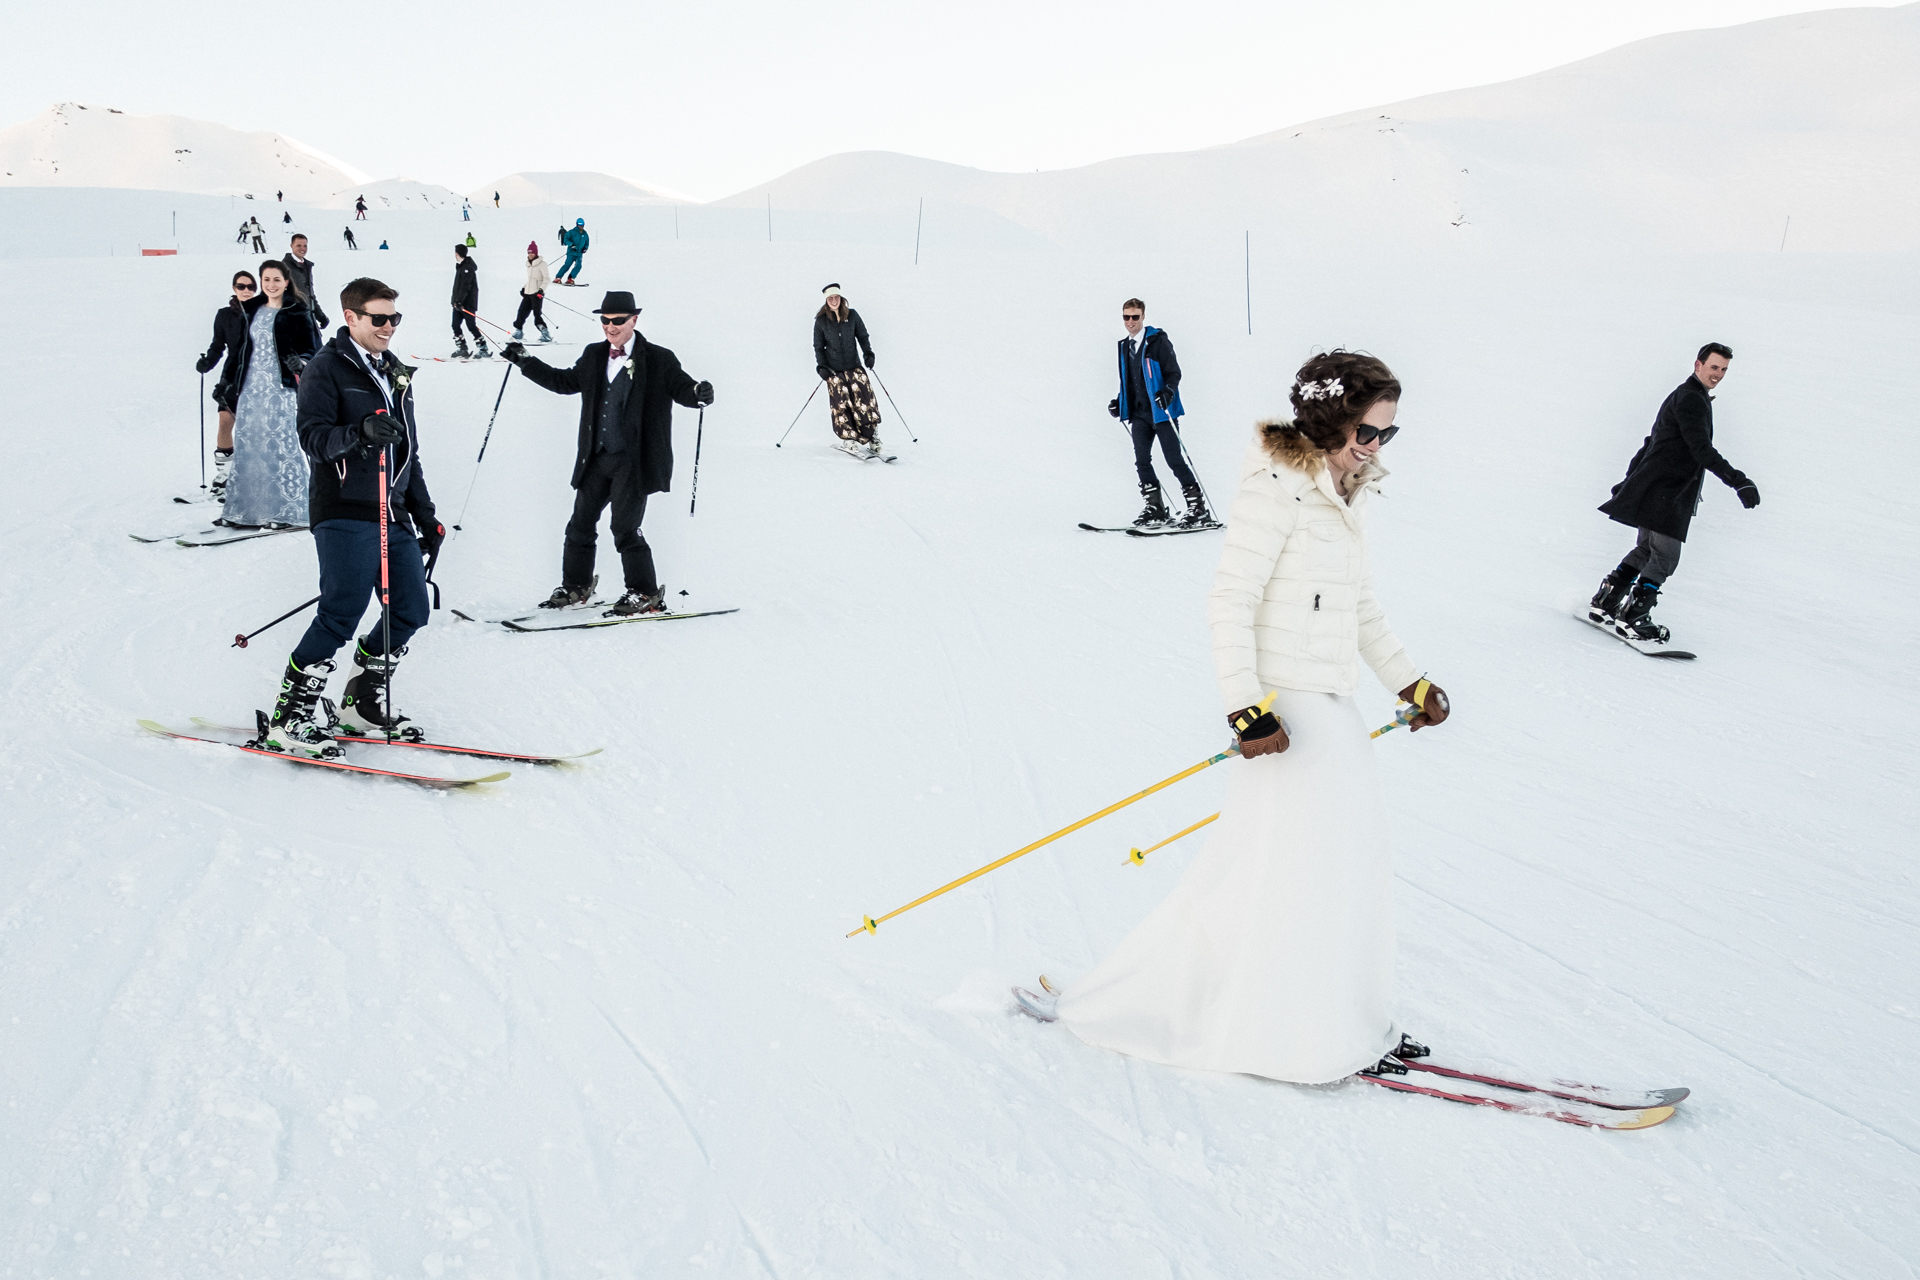 Snow mountain ceremony wedding photography by William Lambelet, WPJA Contest, POY 2017